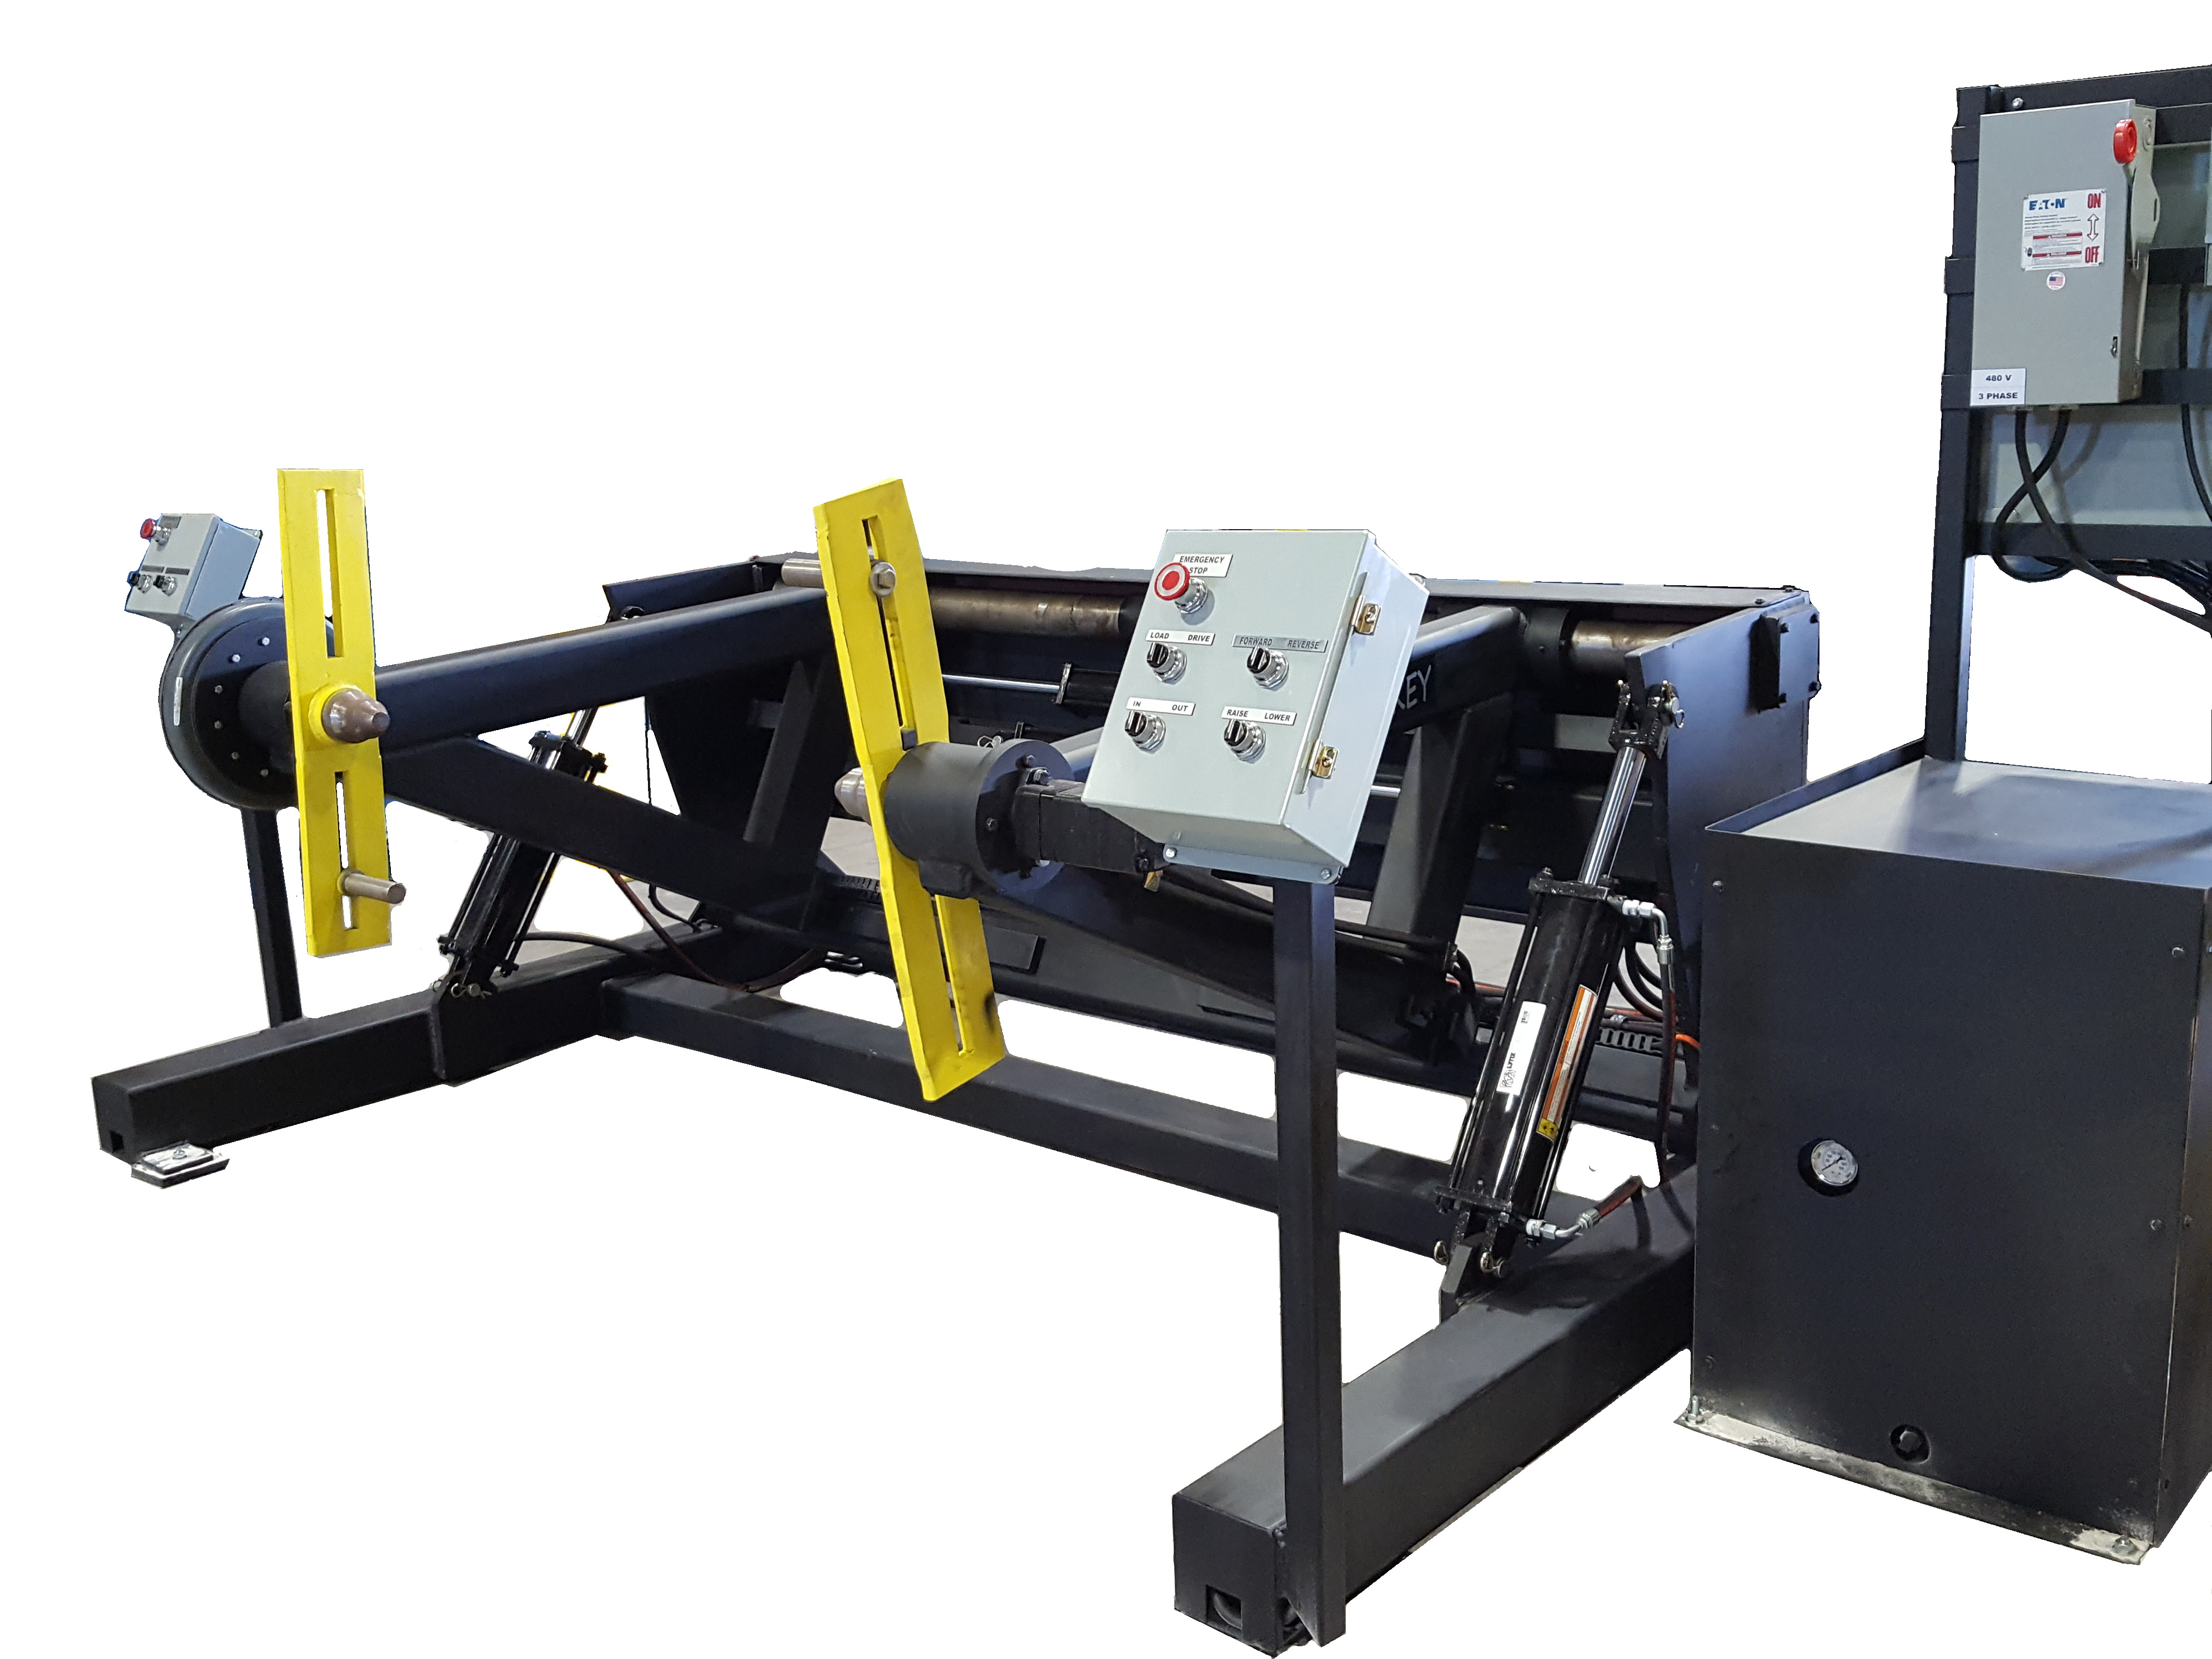 shaft-less reel handling equipment